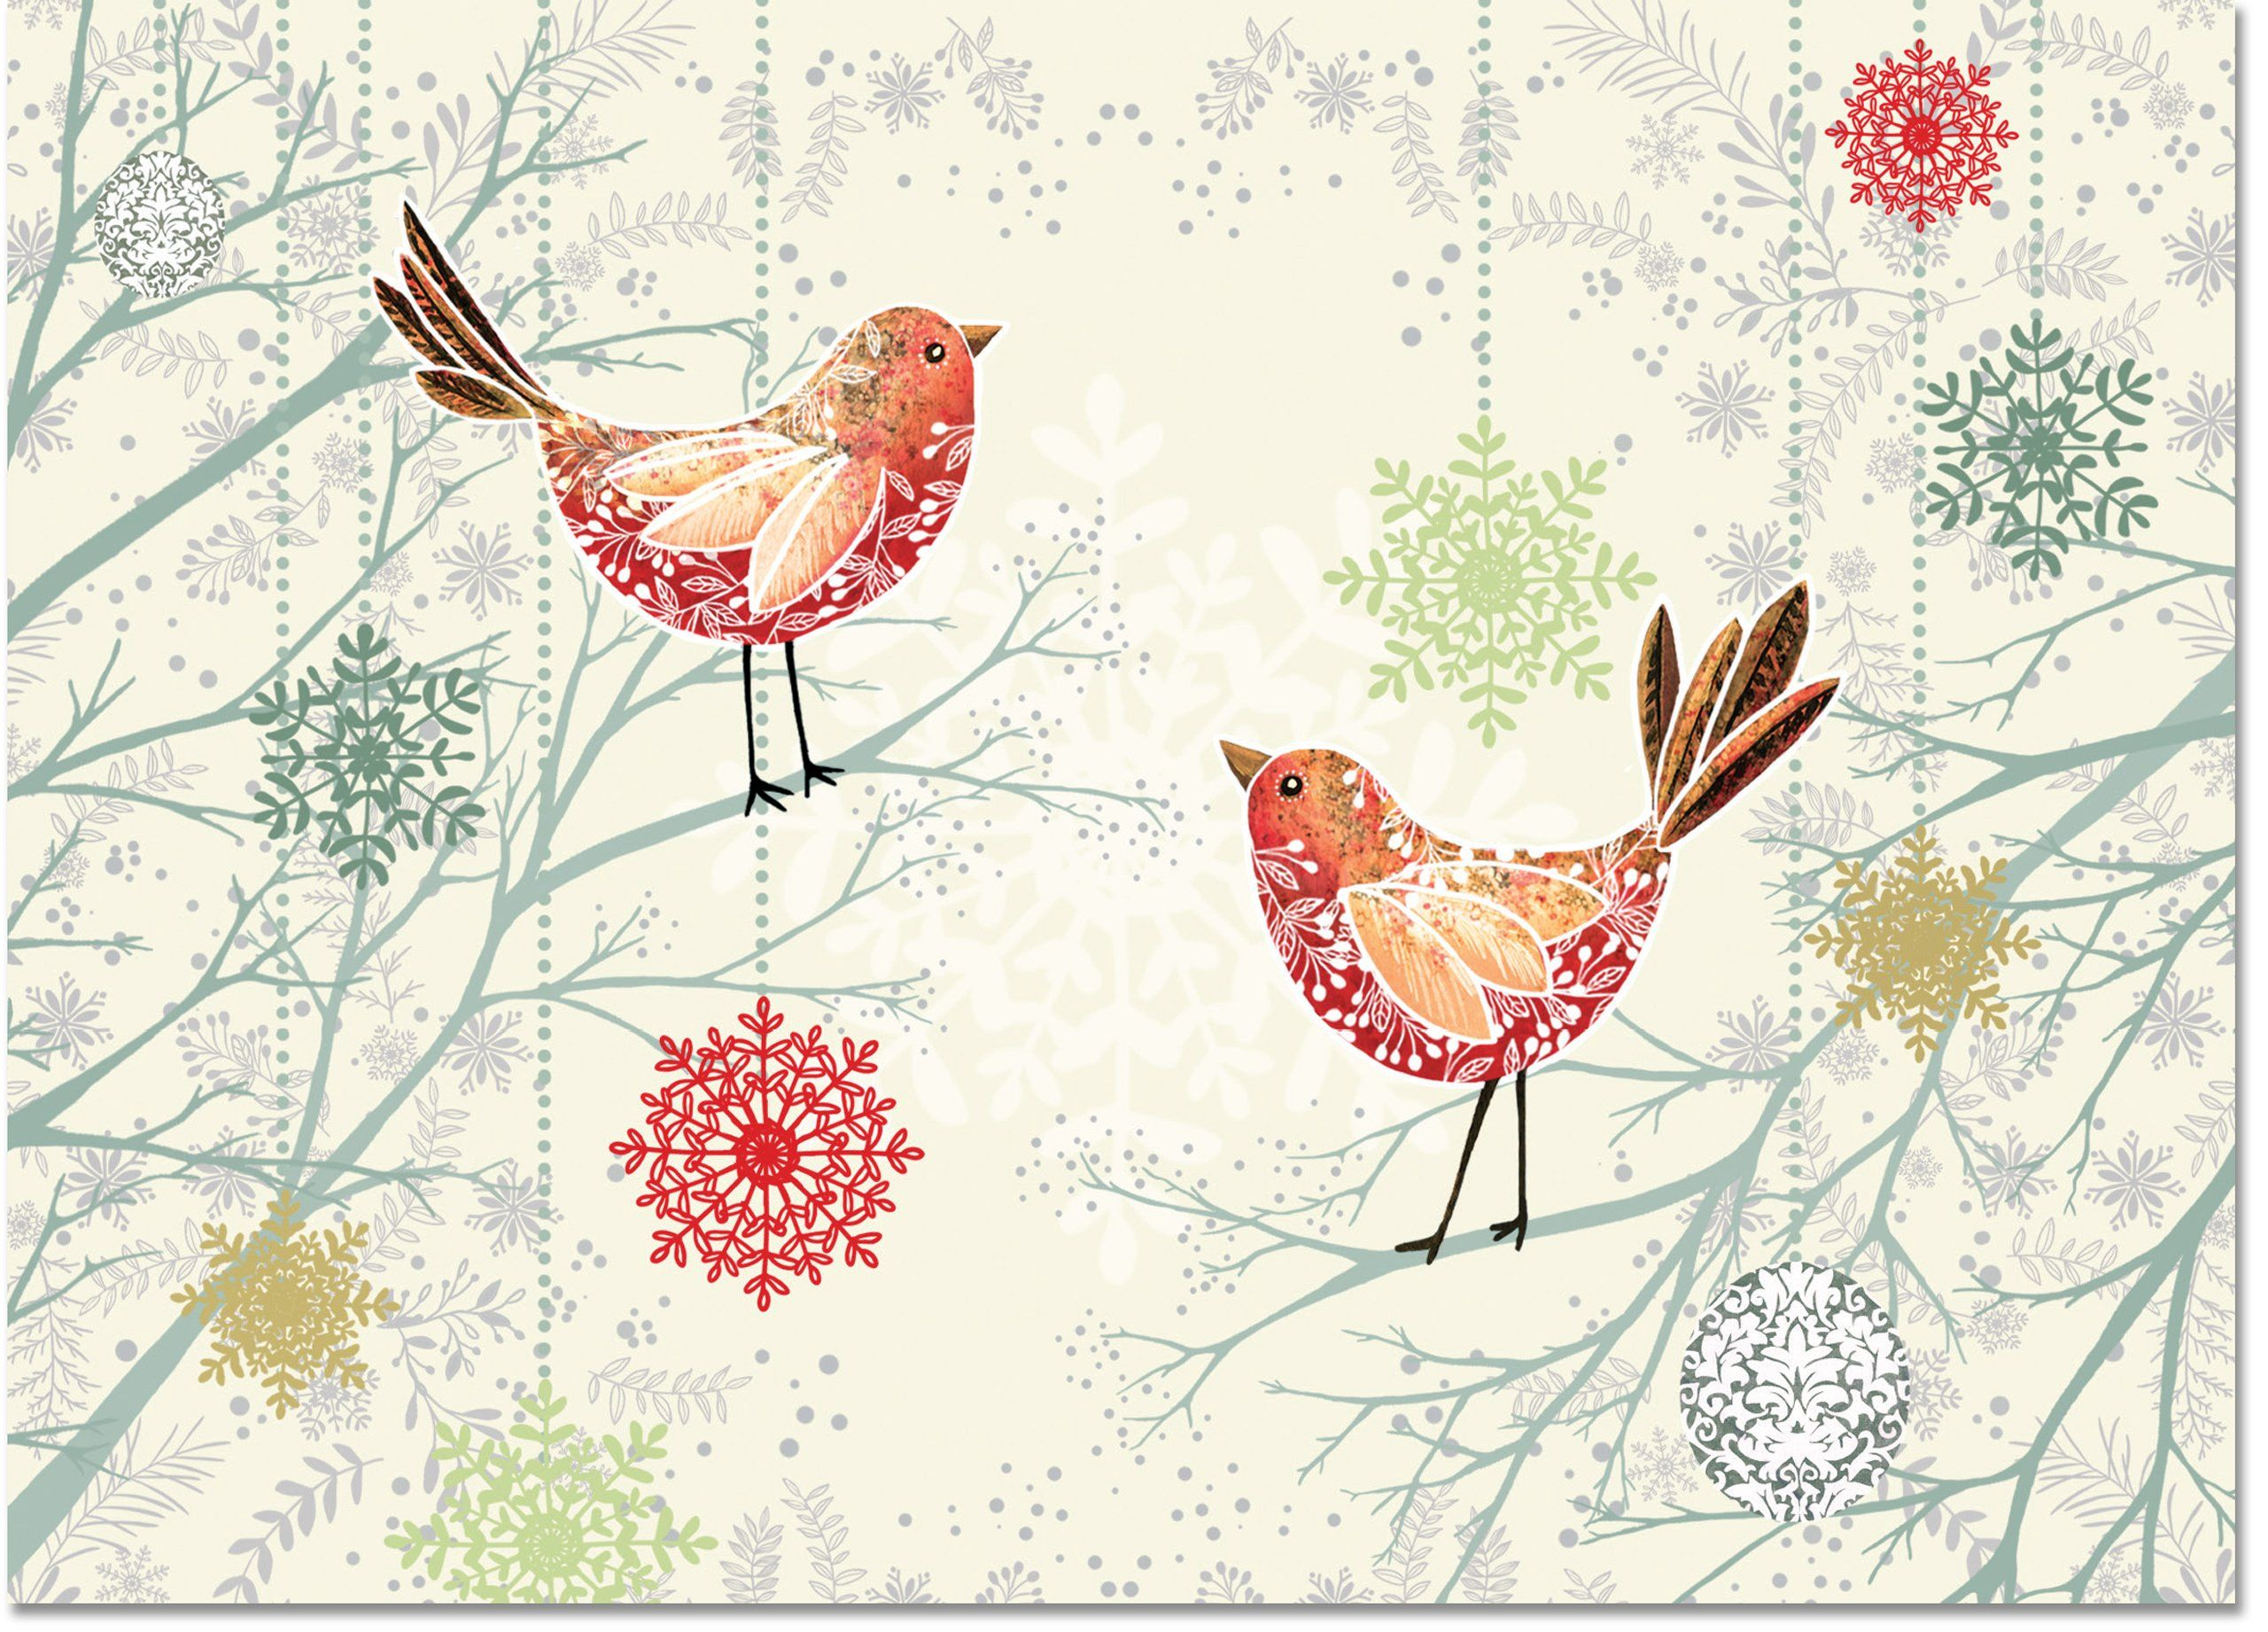 Festive Feathers Deluxe Boxed Holiday Cards (Christmas Cards ...